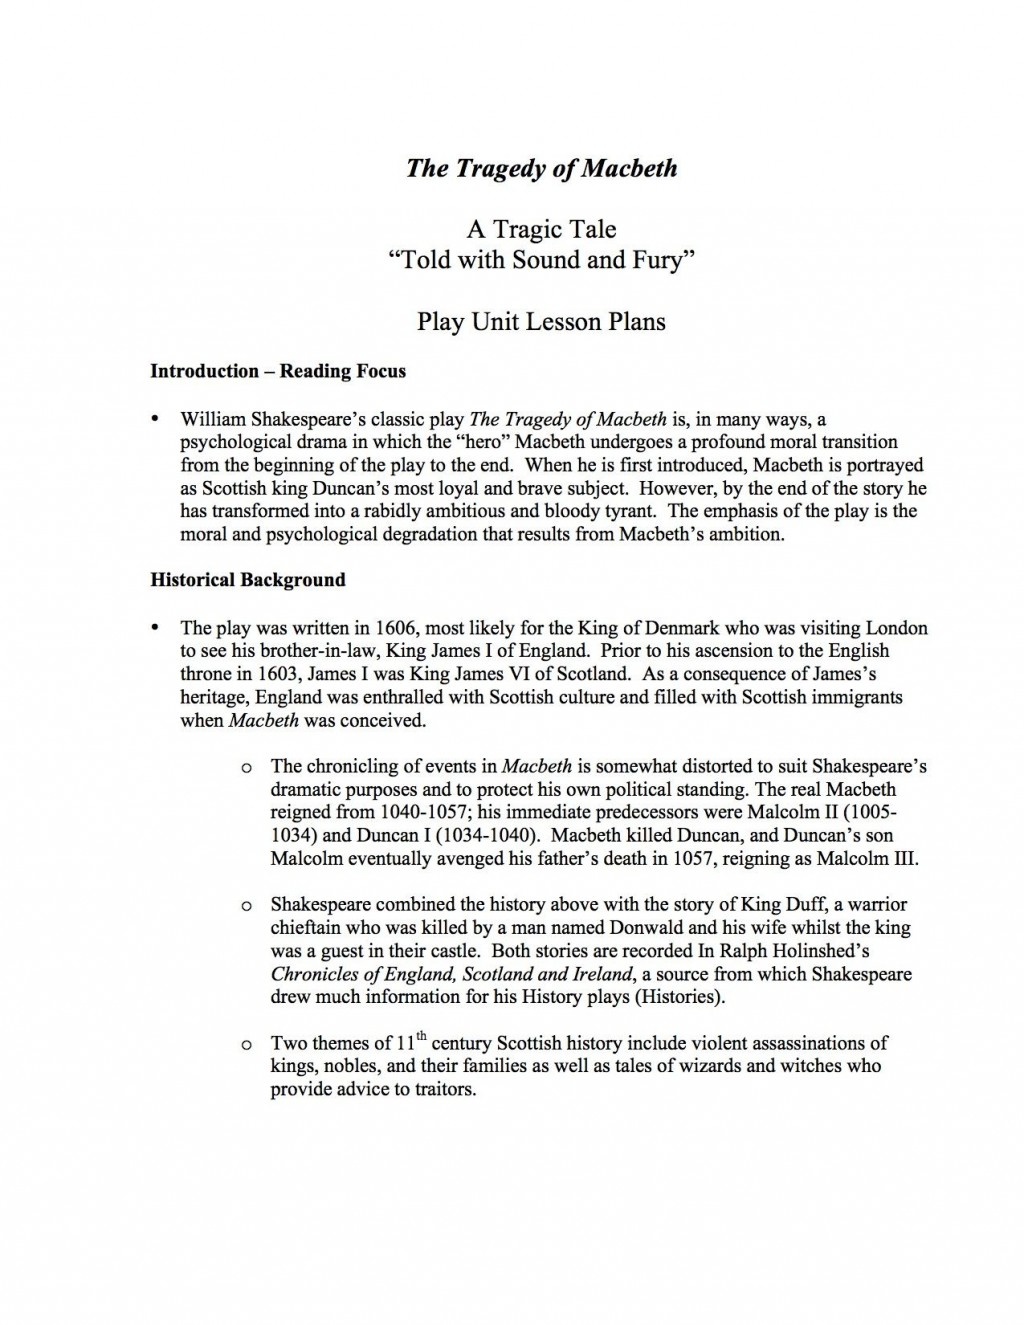 014 Essay On Macbeth Example Marvelous And Lady Macbeth's Relationship Literary As A Tragic Hero Plan Large